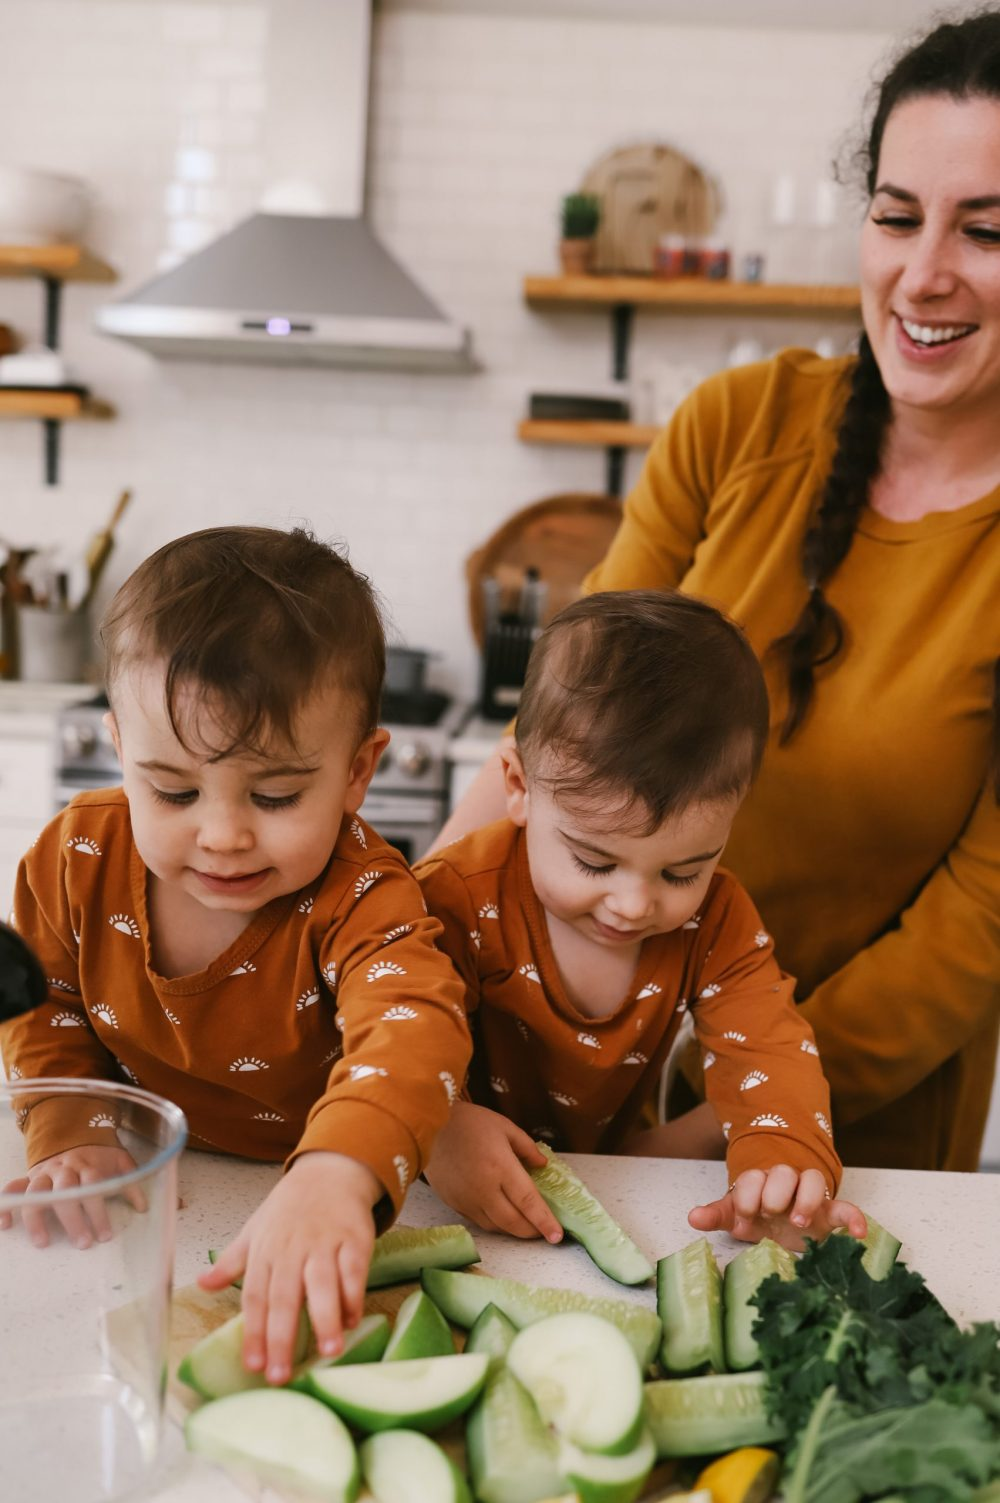 The Best Easy Clean Juicer Review for 2021: We tested easy clean juicers and this is what we found. |Easy Clean Juicer by popular Florida lifestyle blog, Fresh Mommy Blog: image of twin baby boys eating cucumbers.